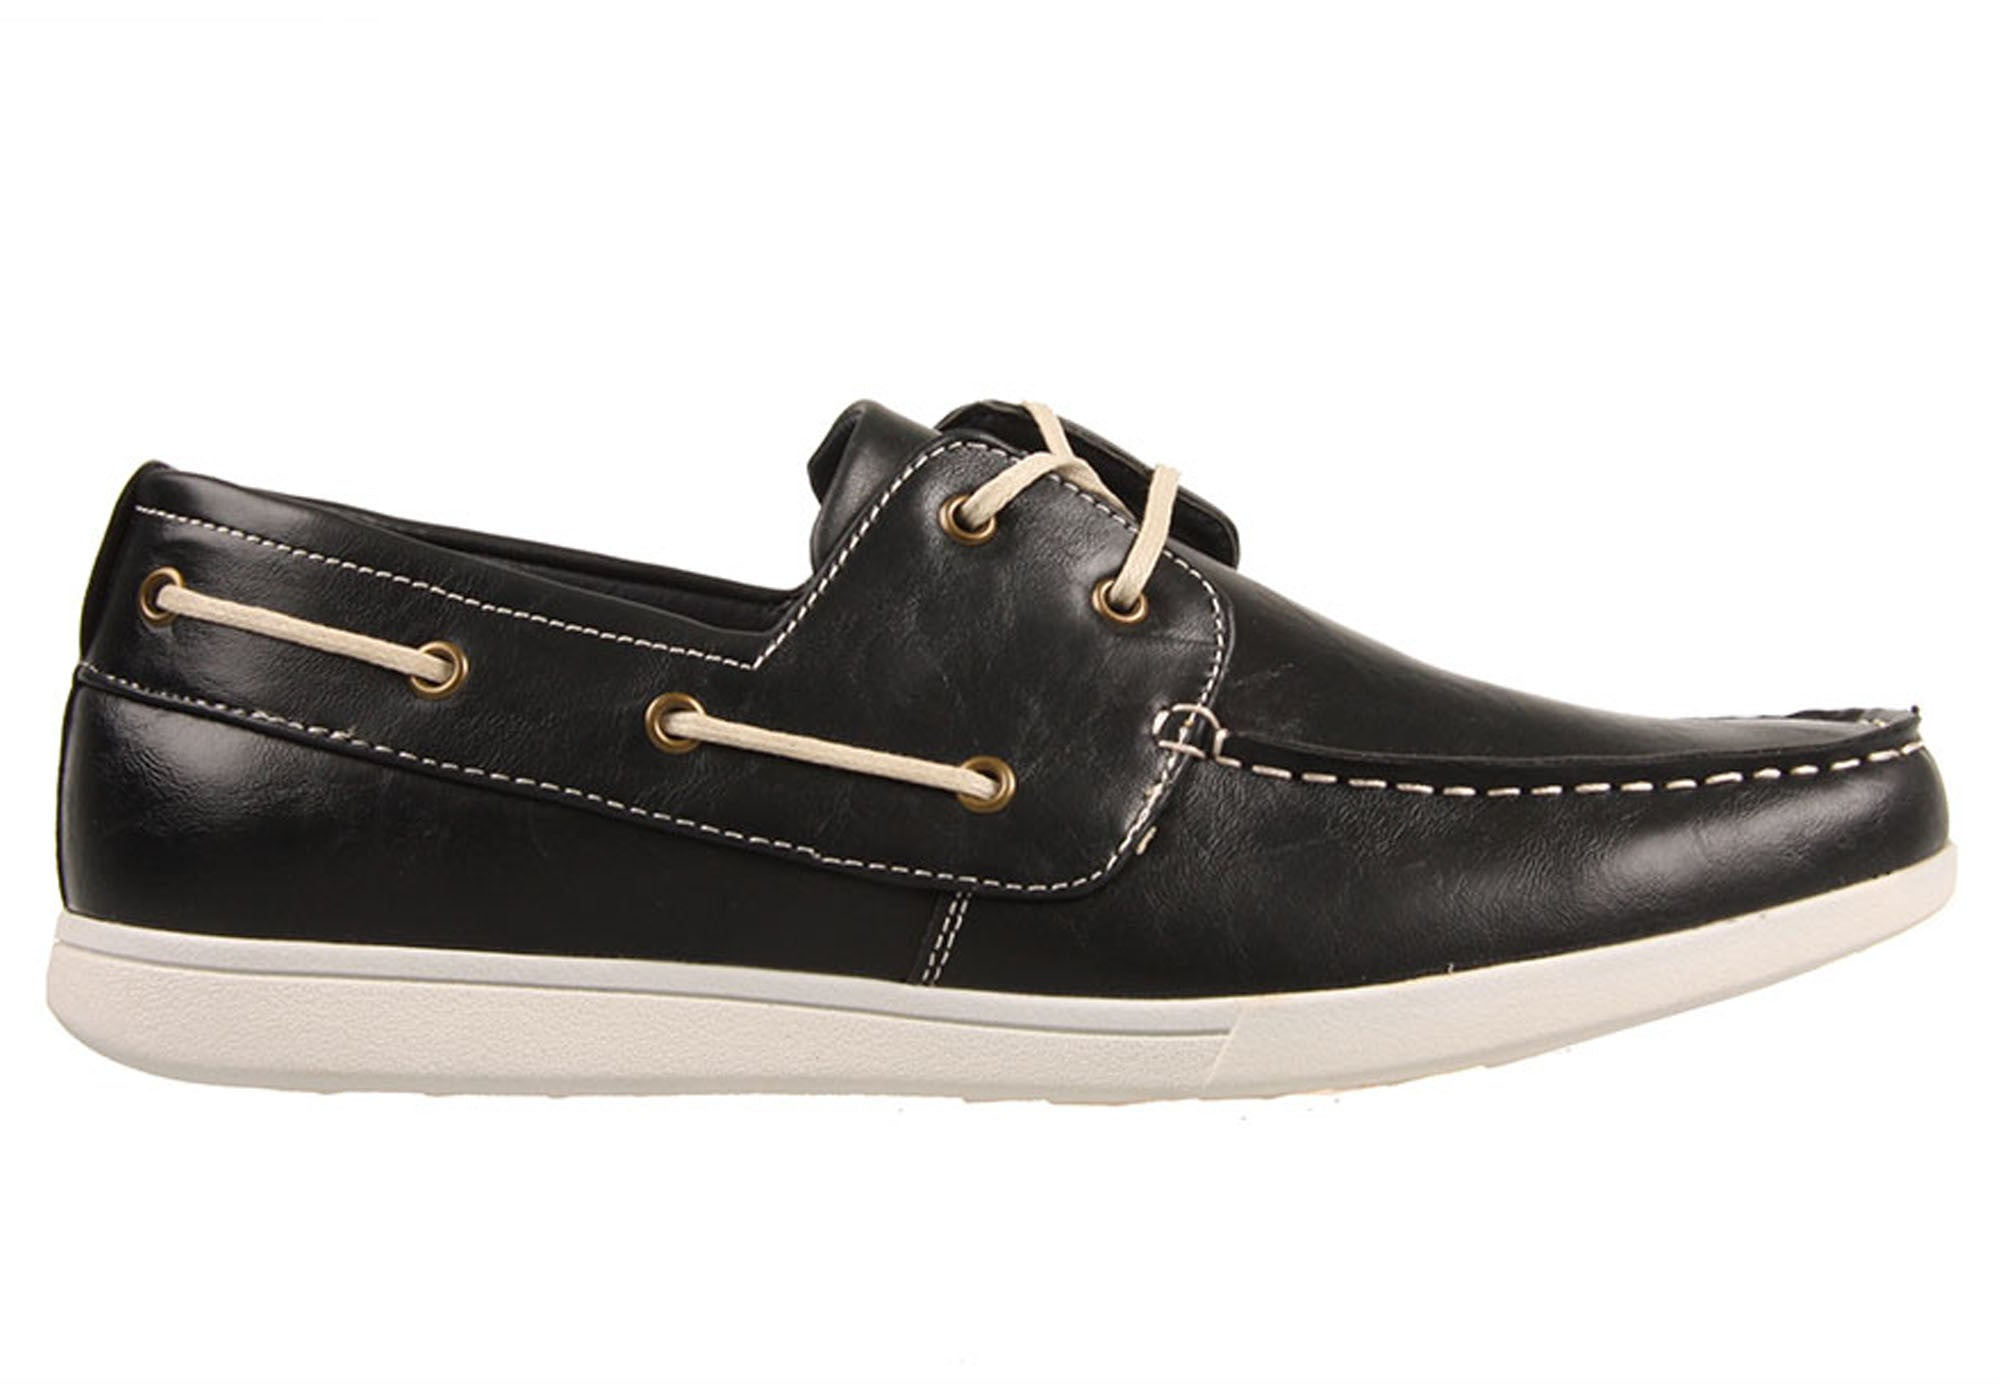 new grosby deck mens casual boat shoes ebay